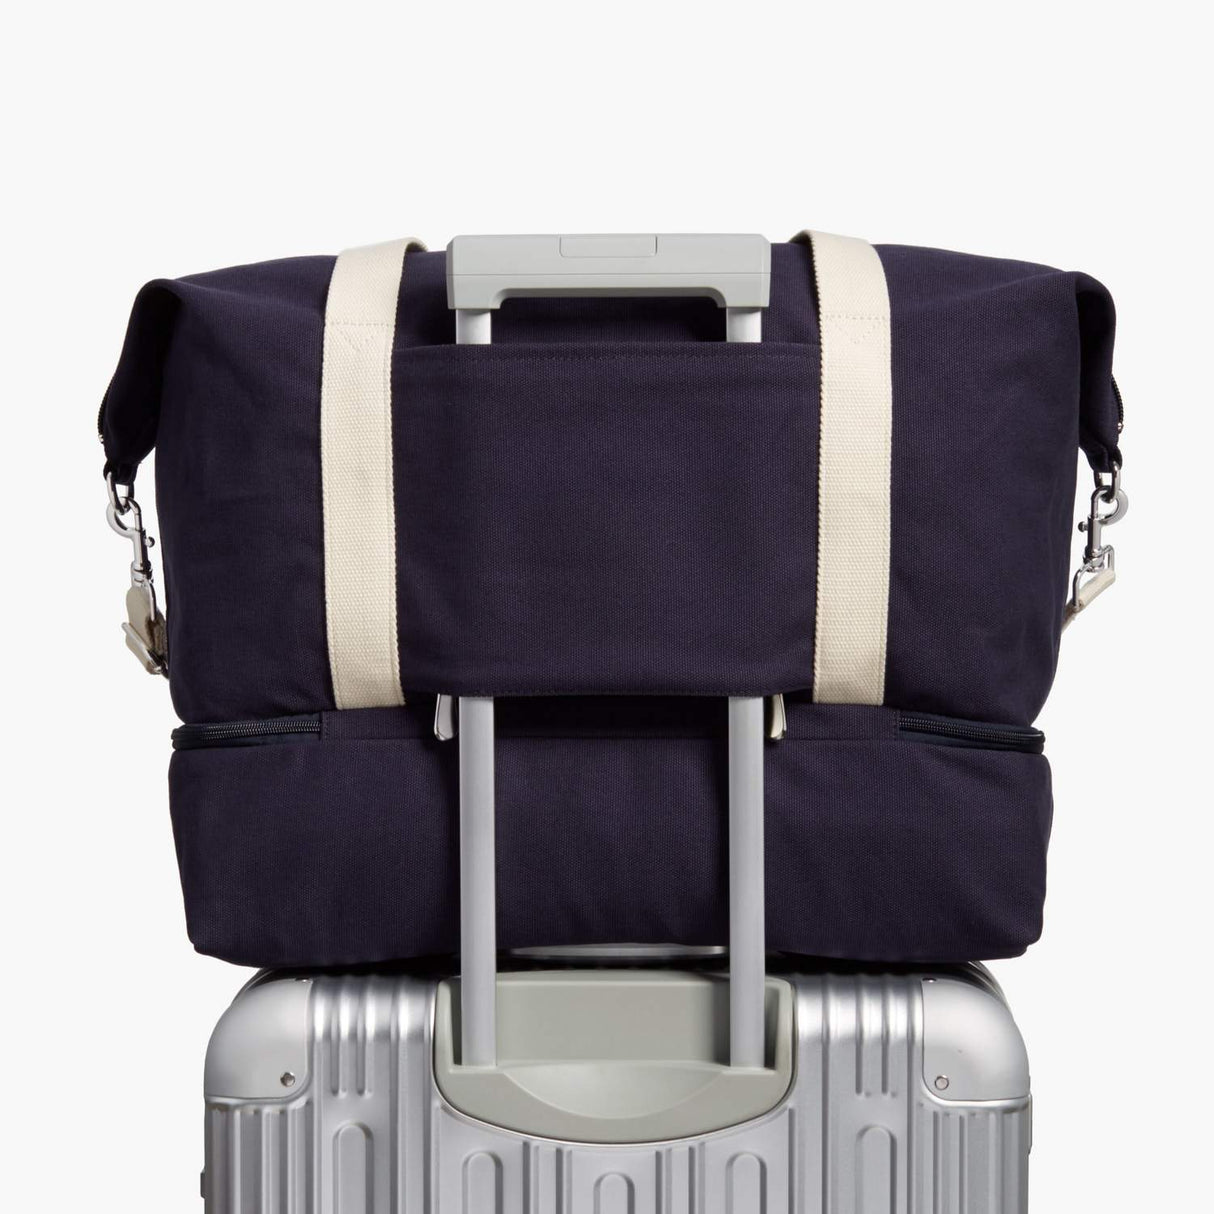 Luggage Sleeve - Catalina Deluxe - Organic Canvas - Deep Navy - Weekender - Lo & Sons